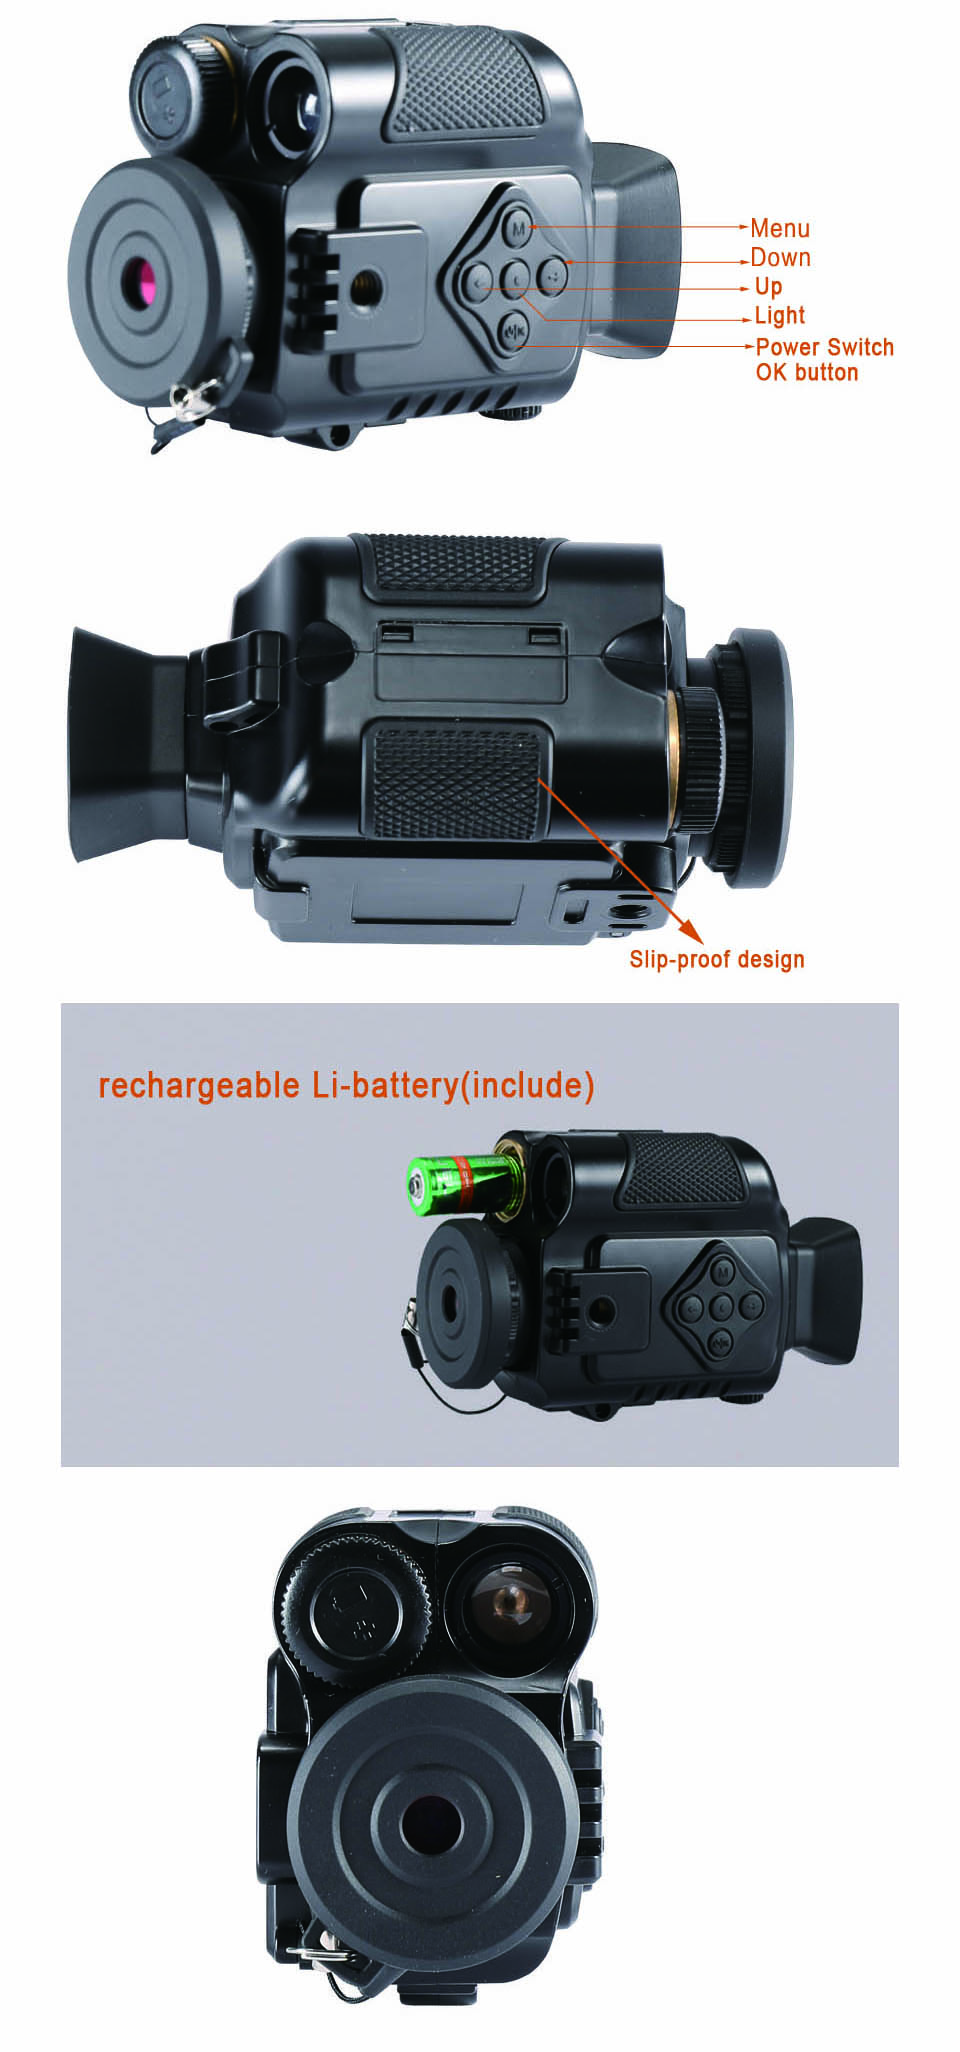 P4 Sport Action Cameras pic-1